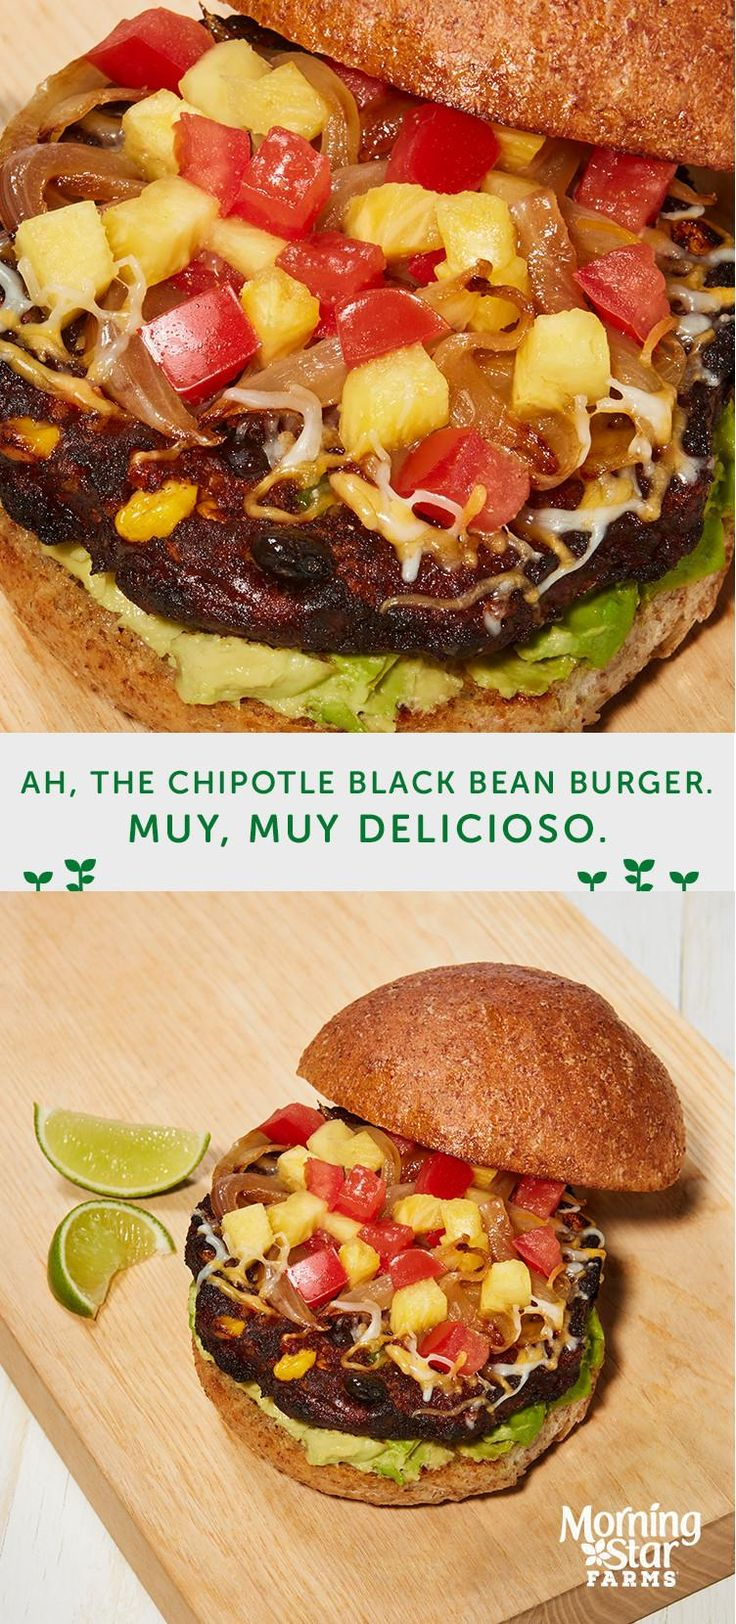 This spicy veggie burger is sure to become a quick go-to weeknight dinner recipe. Muy delicioso!